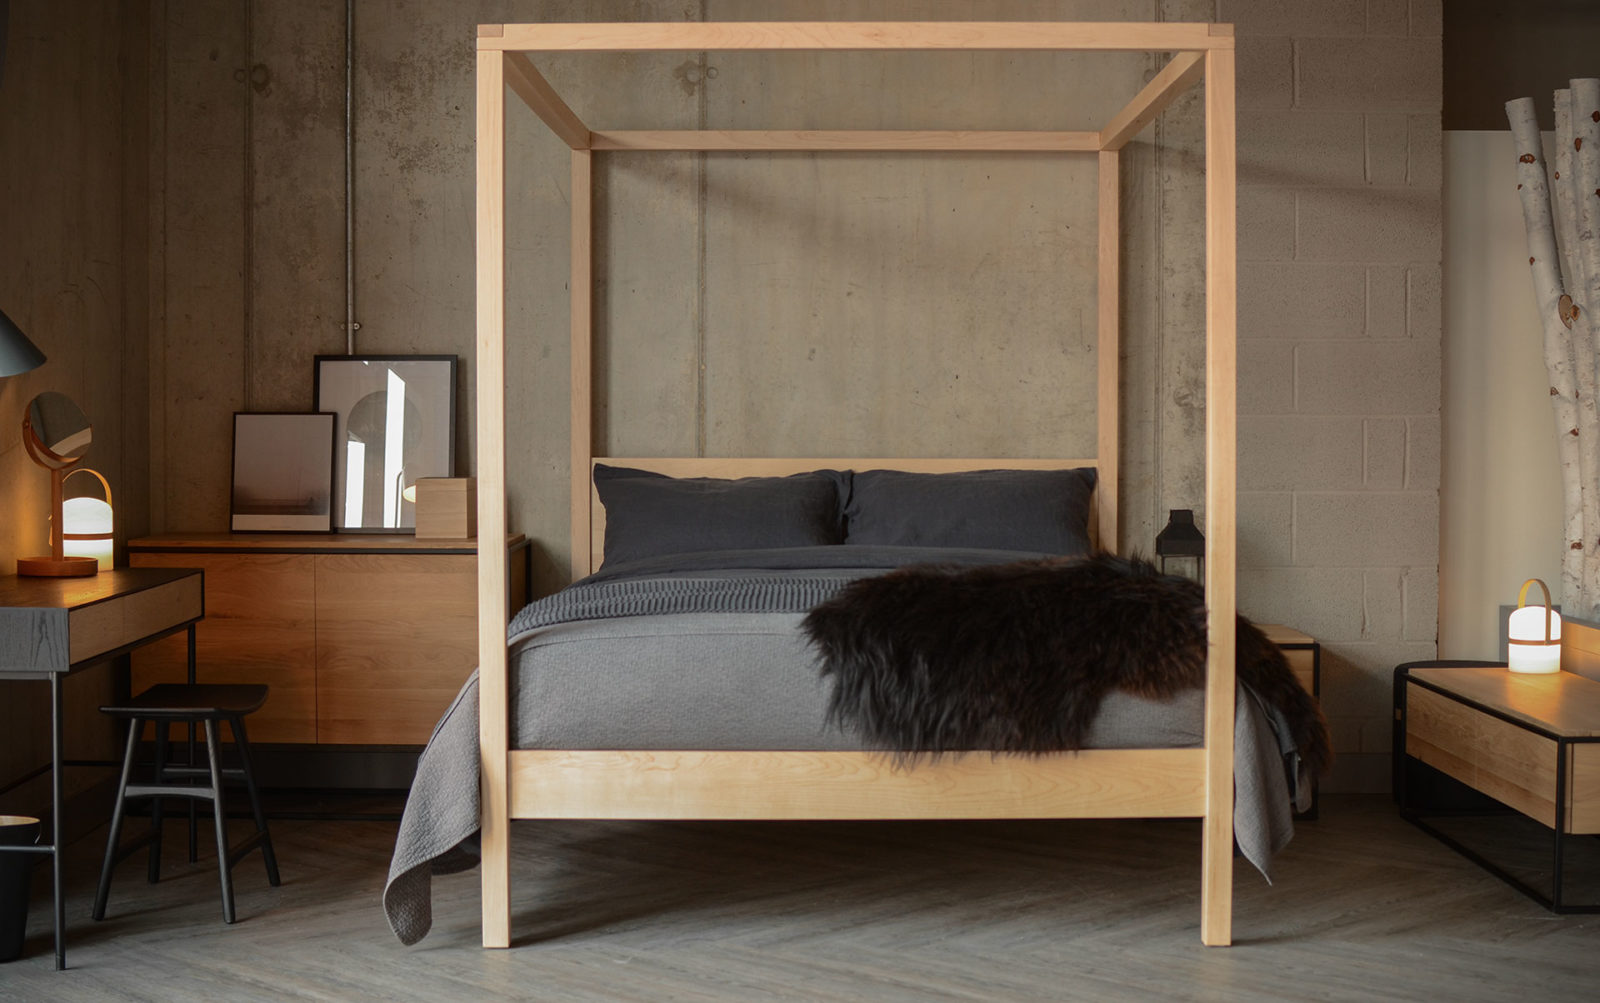 A monochrome colour scheme and pale maple wood Orchid 4 poster bed give this room a Scandi look